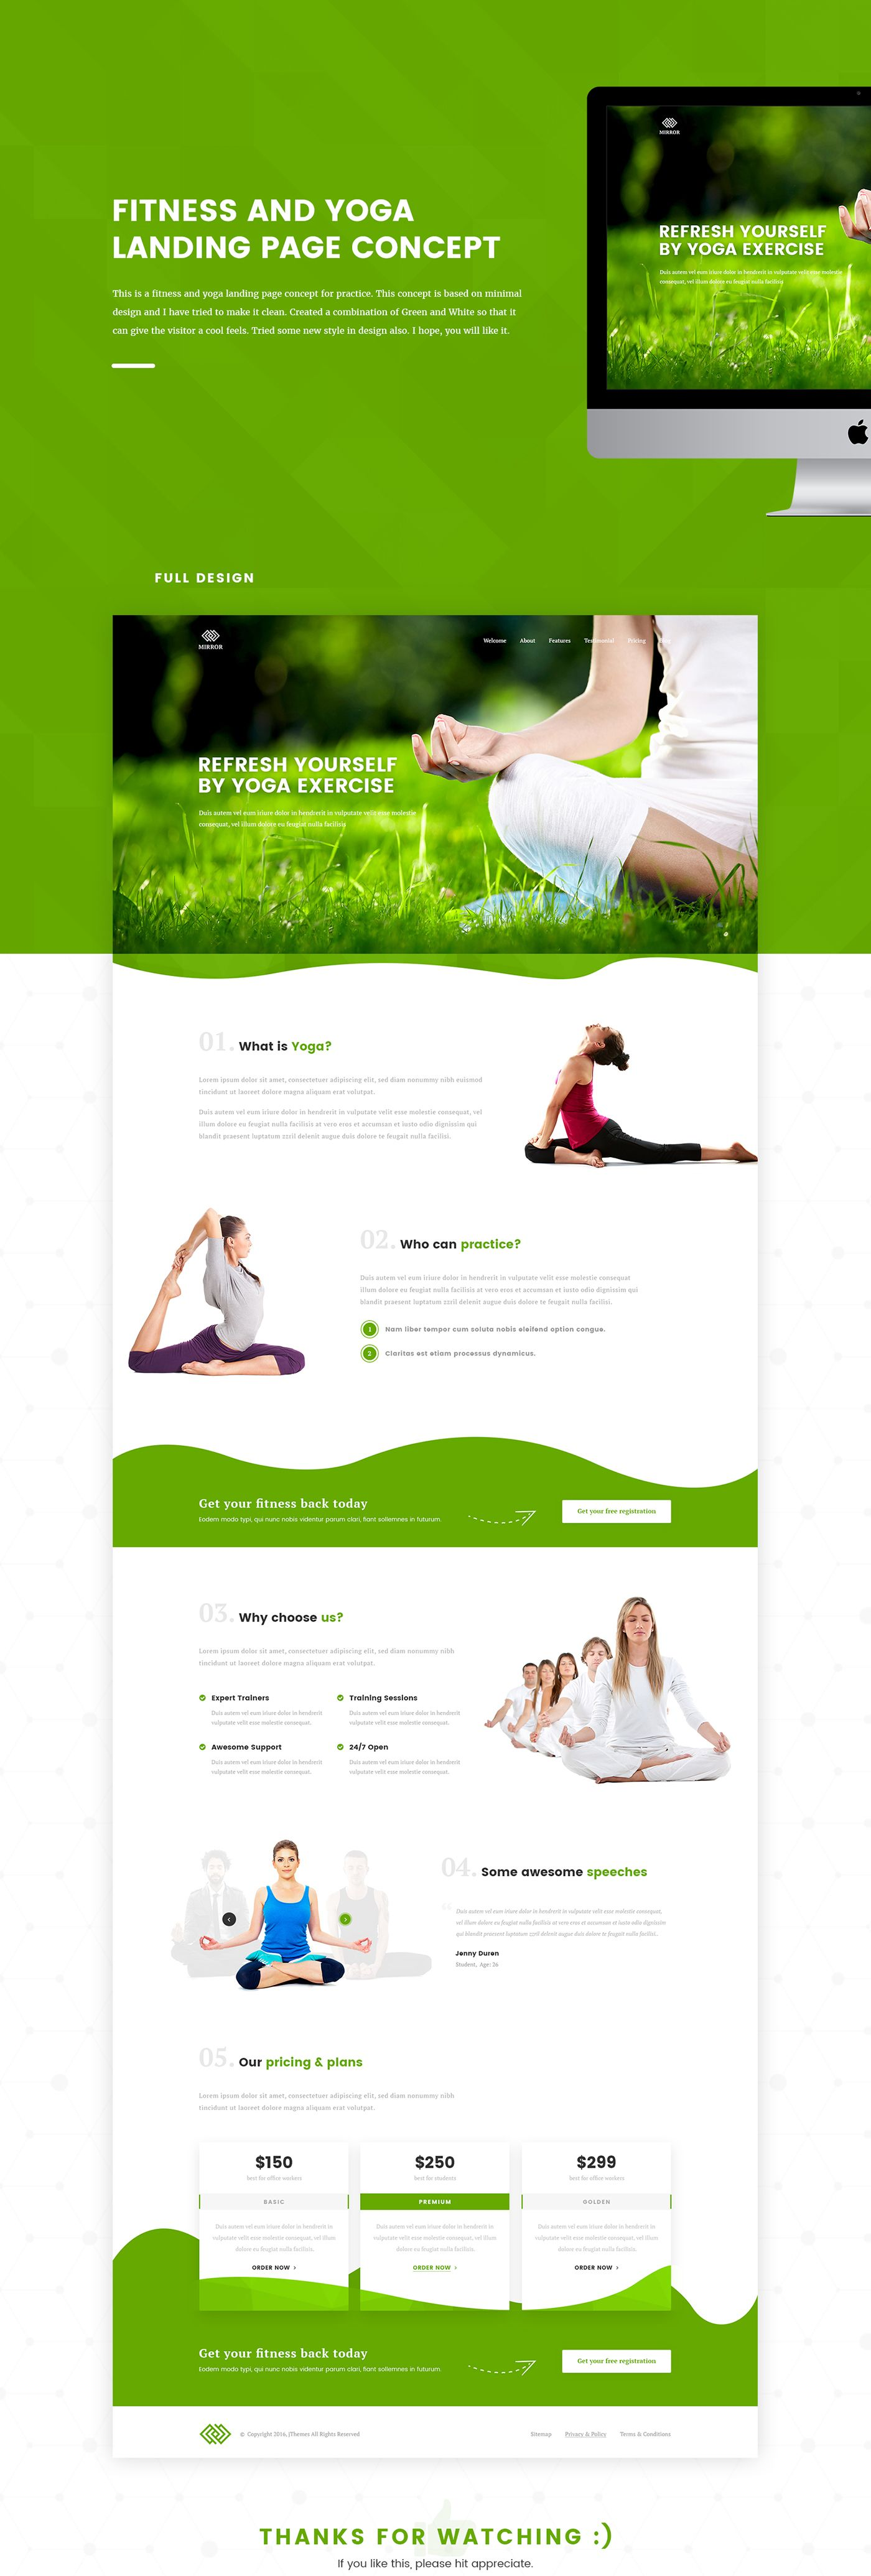 Showcase And Discover Creative Work On The World S Leading Online Platform For Creative Industries Landing Page Clean Web Design Mailer Design